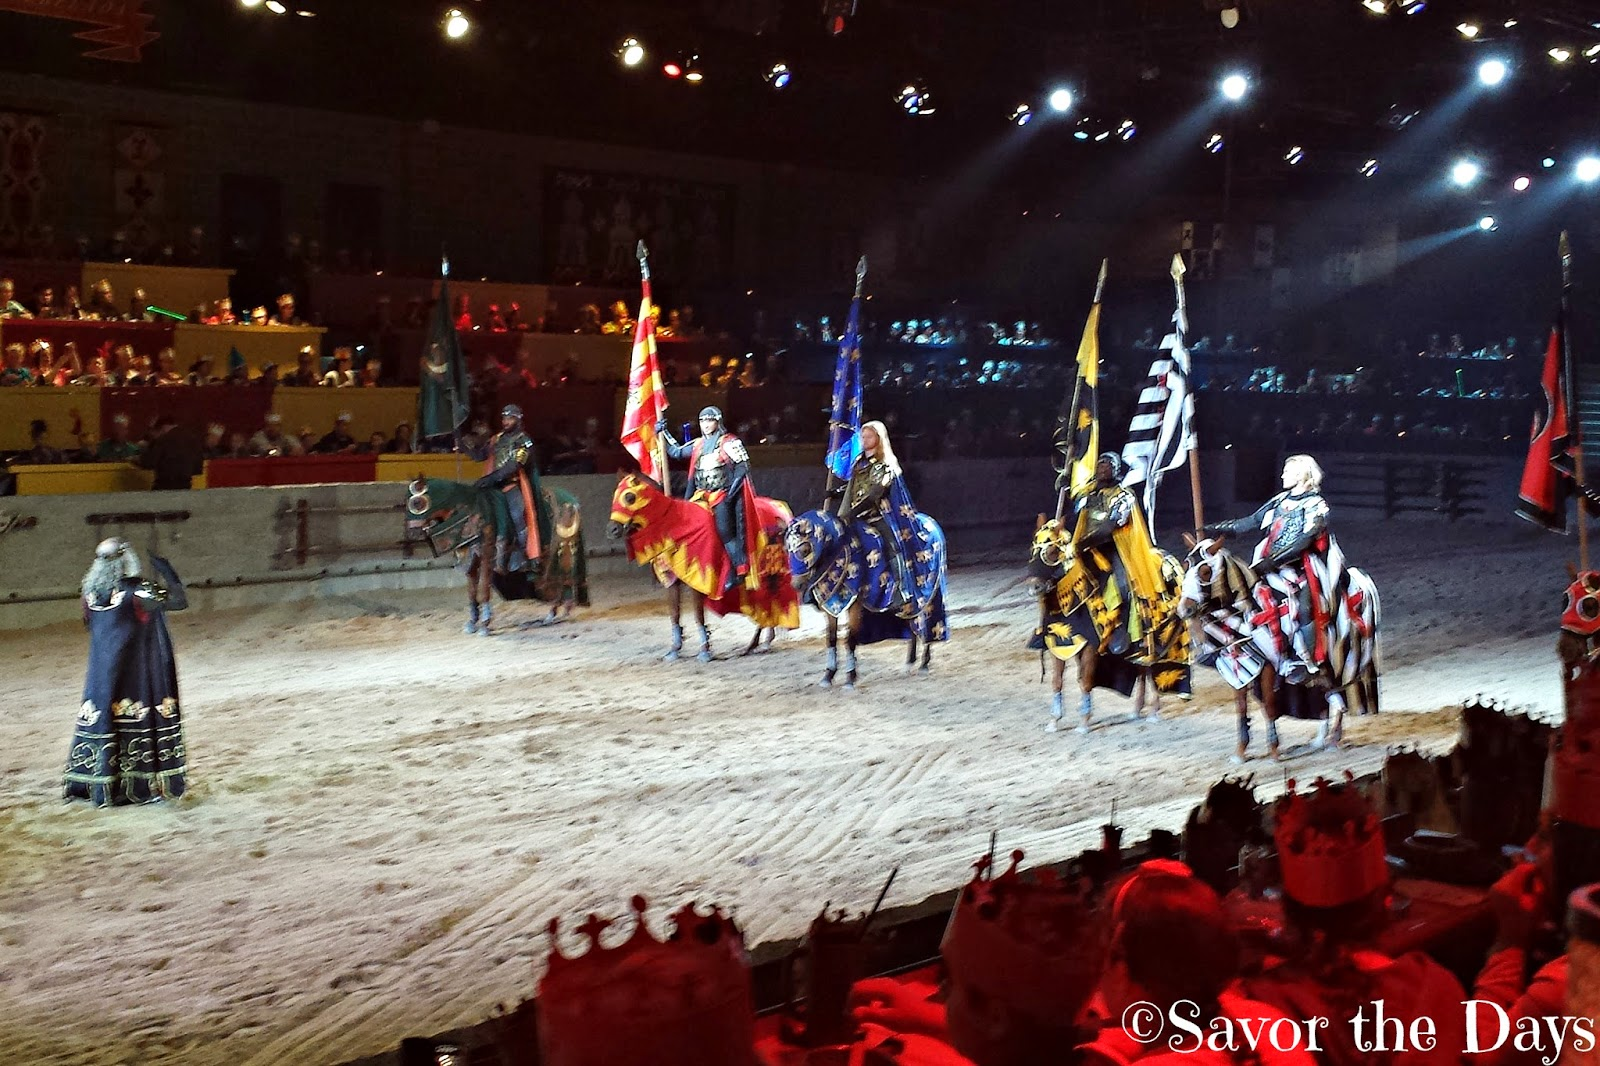 Amazing Knights at Medieval Knights